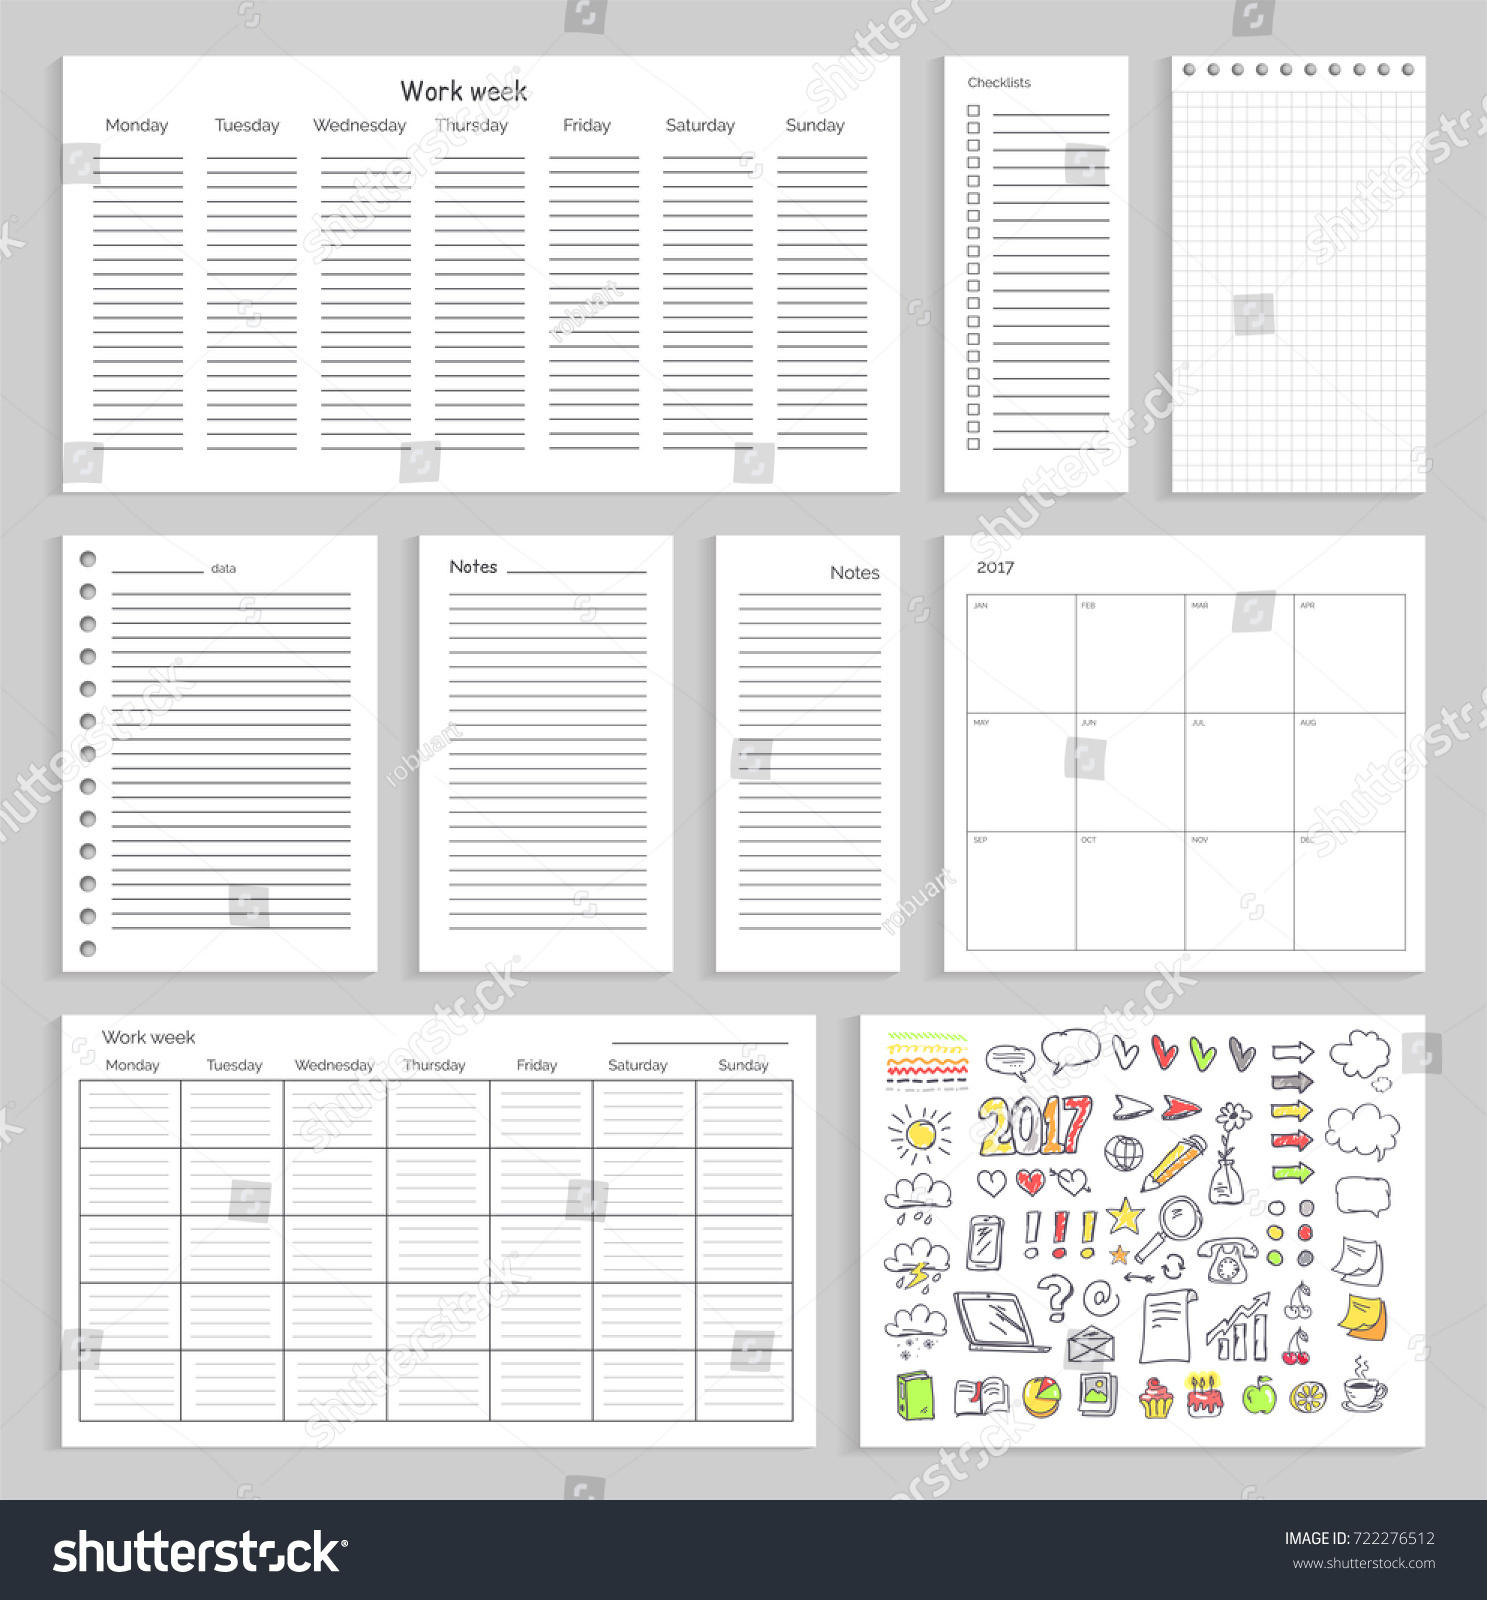 Sheets empty schedule notes charts colorful stock vector 722276512 sheets with empty schedule notes charts and colorful sketches of small graphics weather biocorpaavc